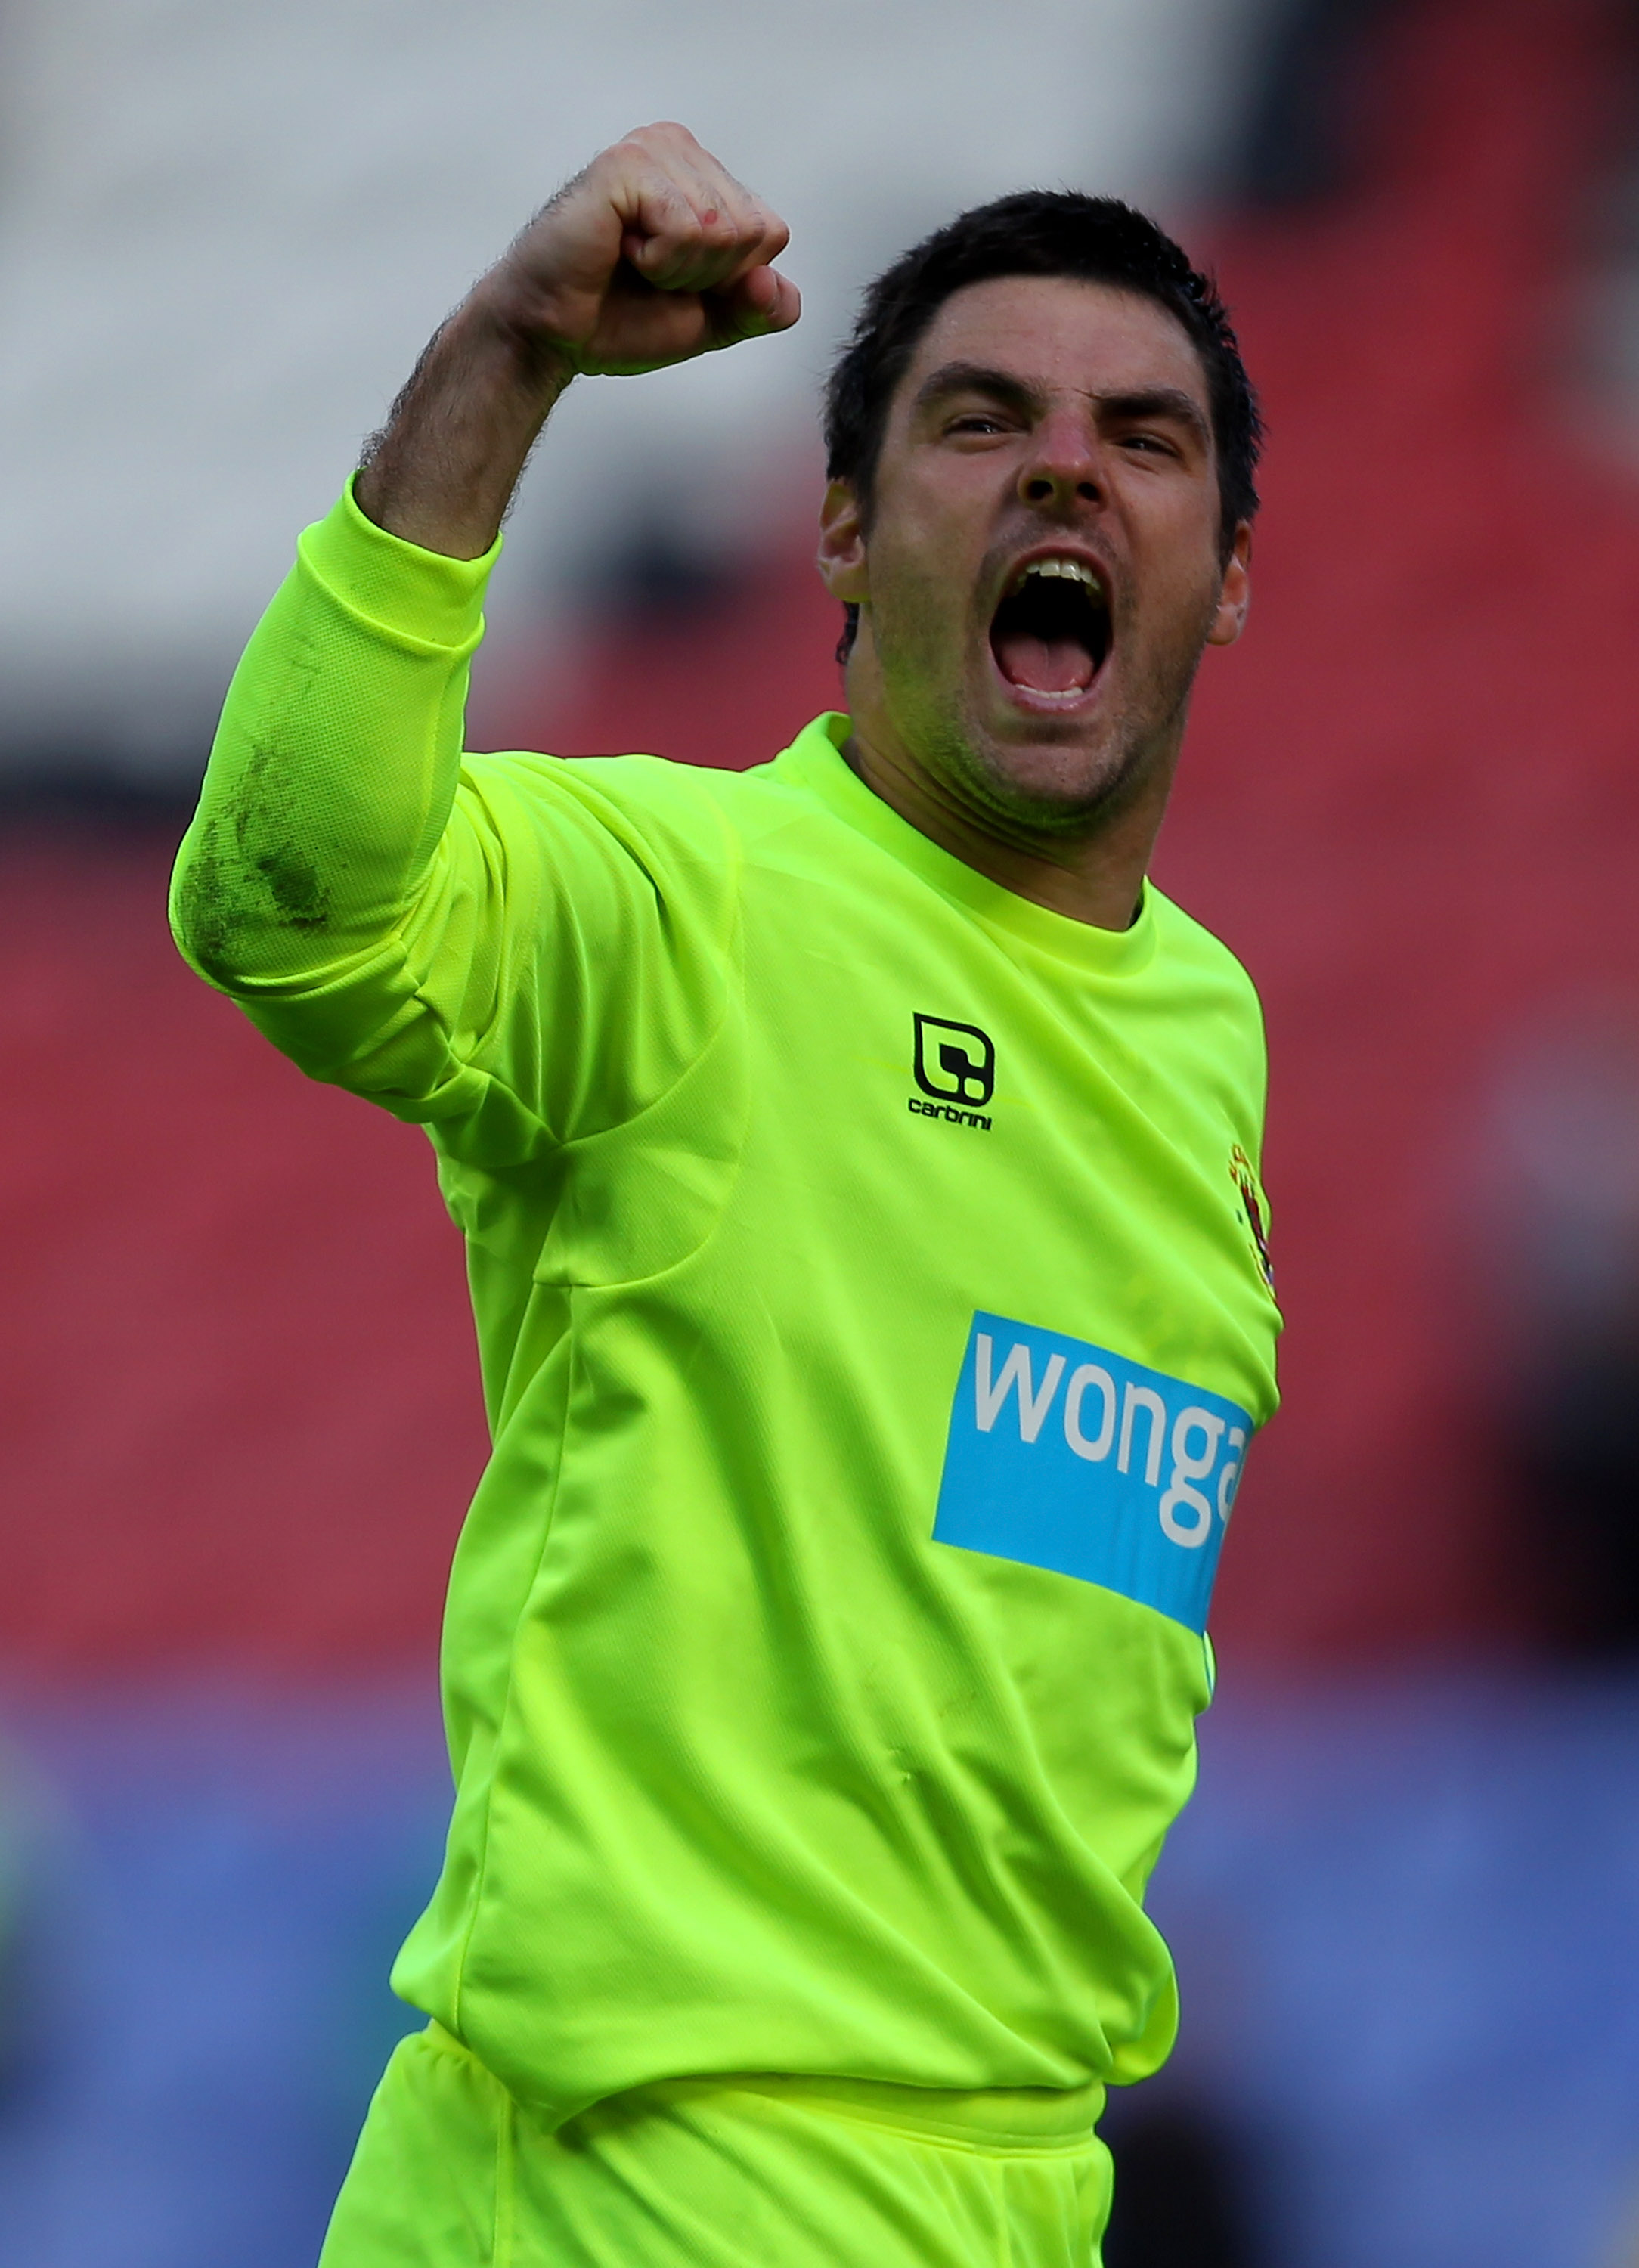 WIGAN, ENGLAND - AUGUST 14:  Matthew Gilks of Blackpool celebrates victory at the end of the Barclays Premier League match between Wigan Athletic and Blackpool at the DW Stadium on August 14, 2010 in Wigan, England.  (Photo by Alex Livesey/Getty Images)